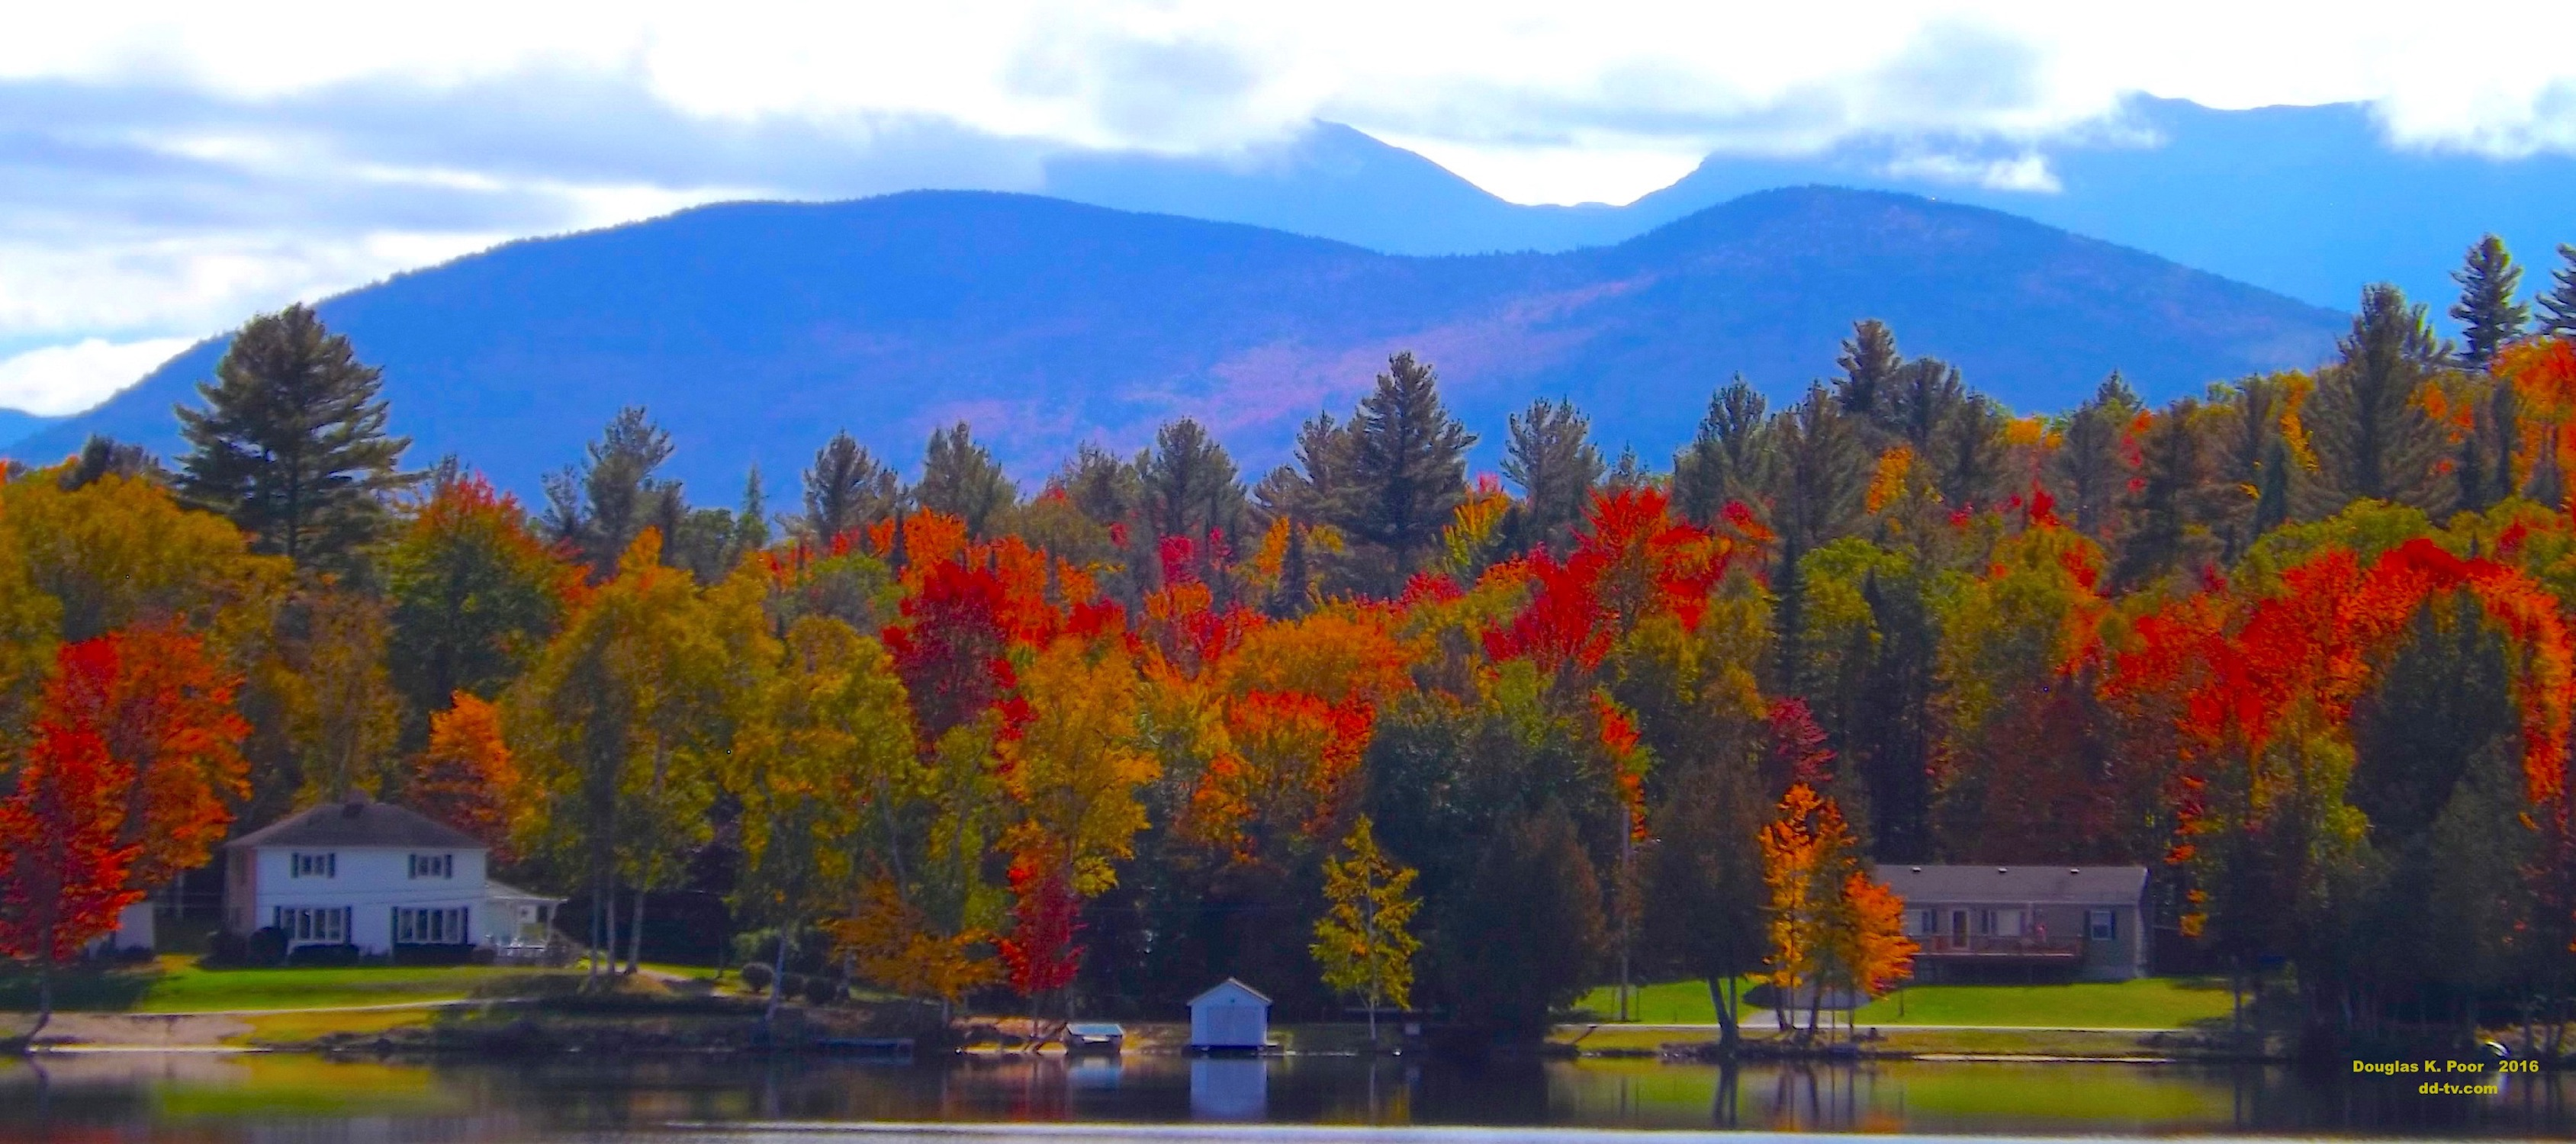 ===============MTNS-FOLIAGE-POND-2-smaller-size=======================================================================================================================================================================================================MTNS-FOLIAGE-POND-2-smaller-size